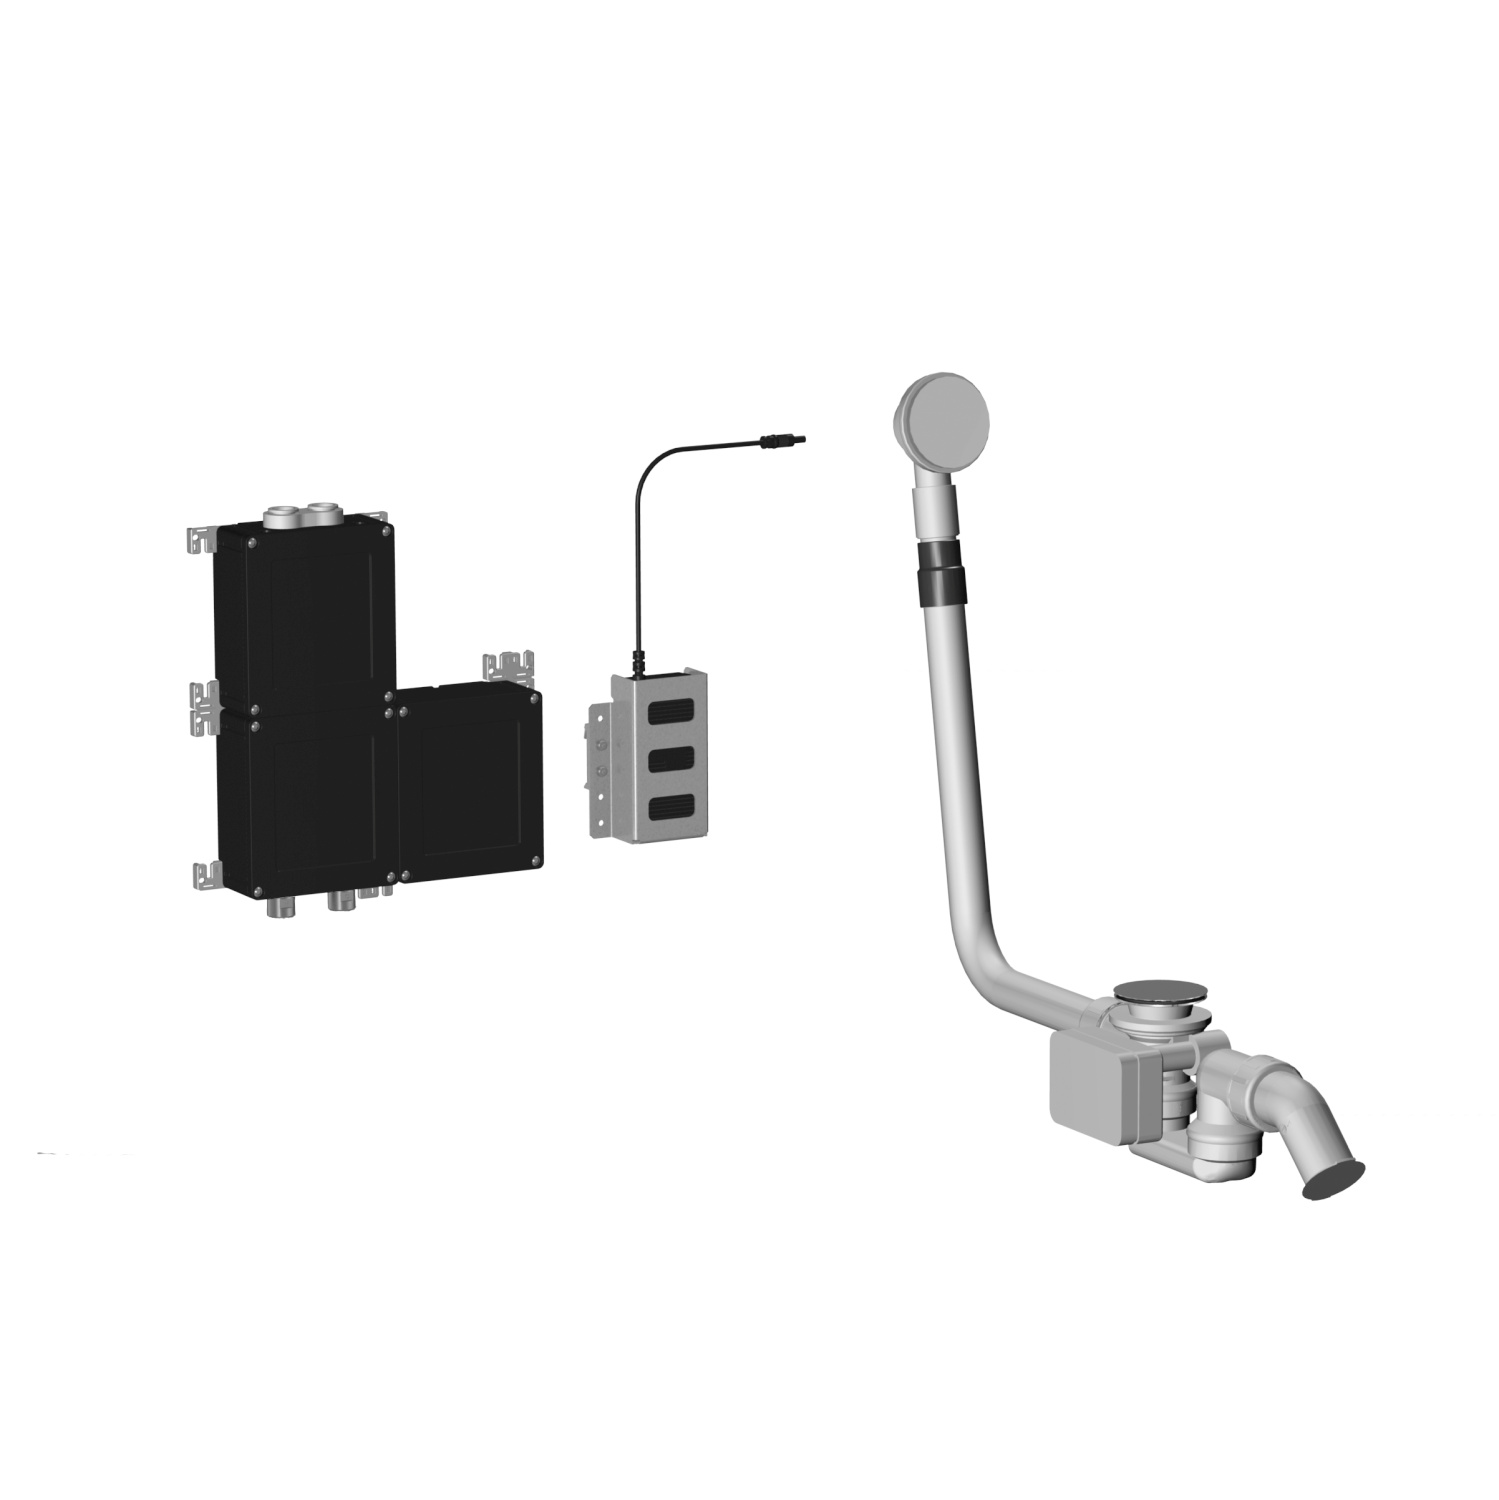 eSET Bath for 2 outlet points - polished chrome - 35 025 970-00